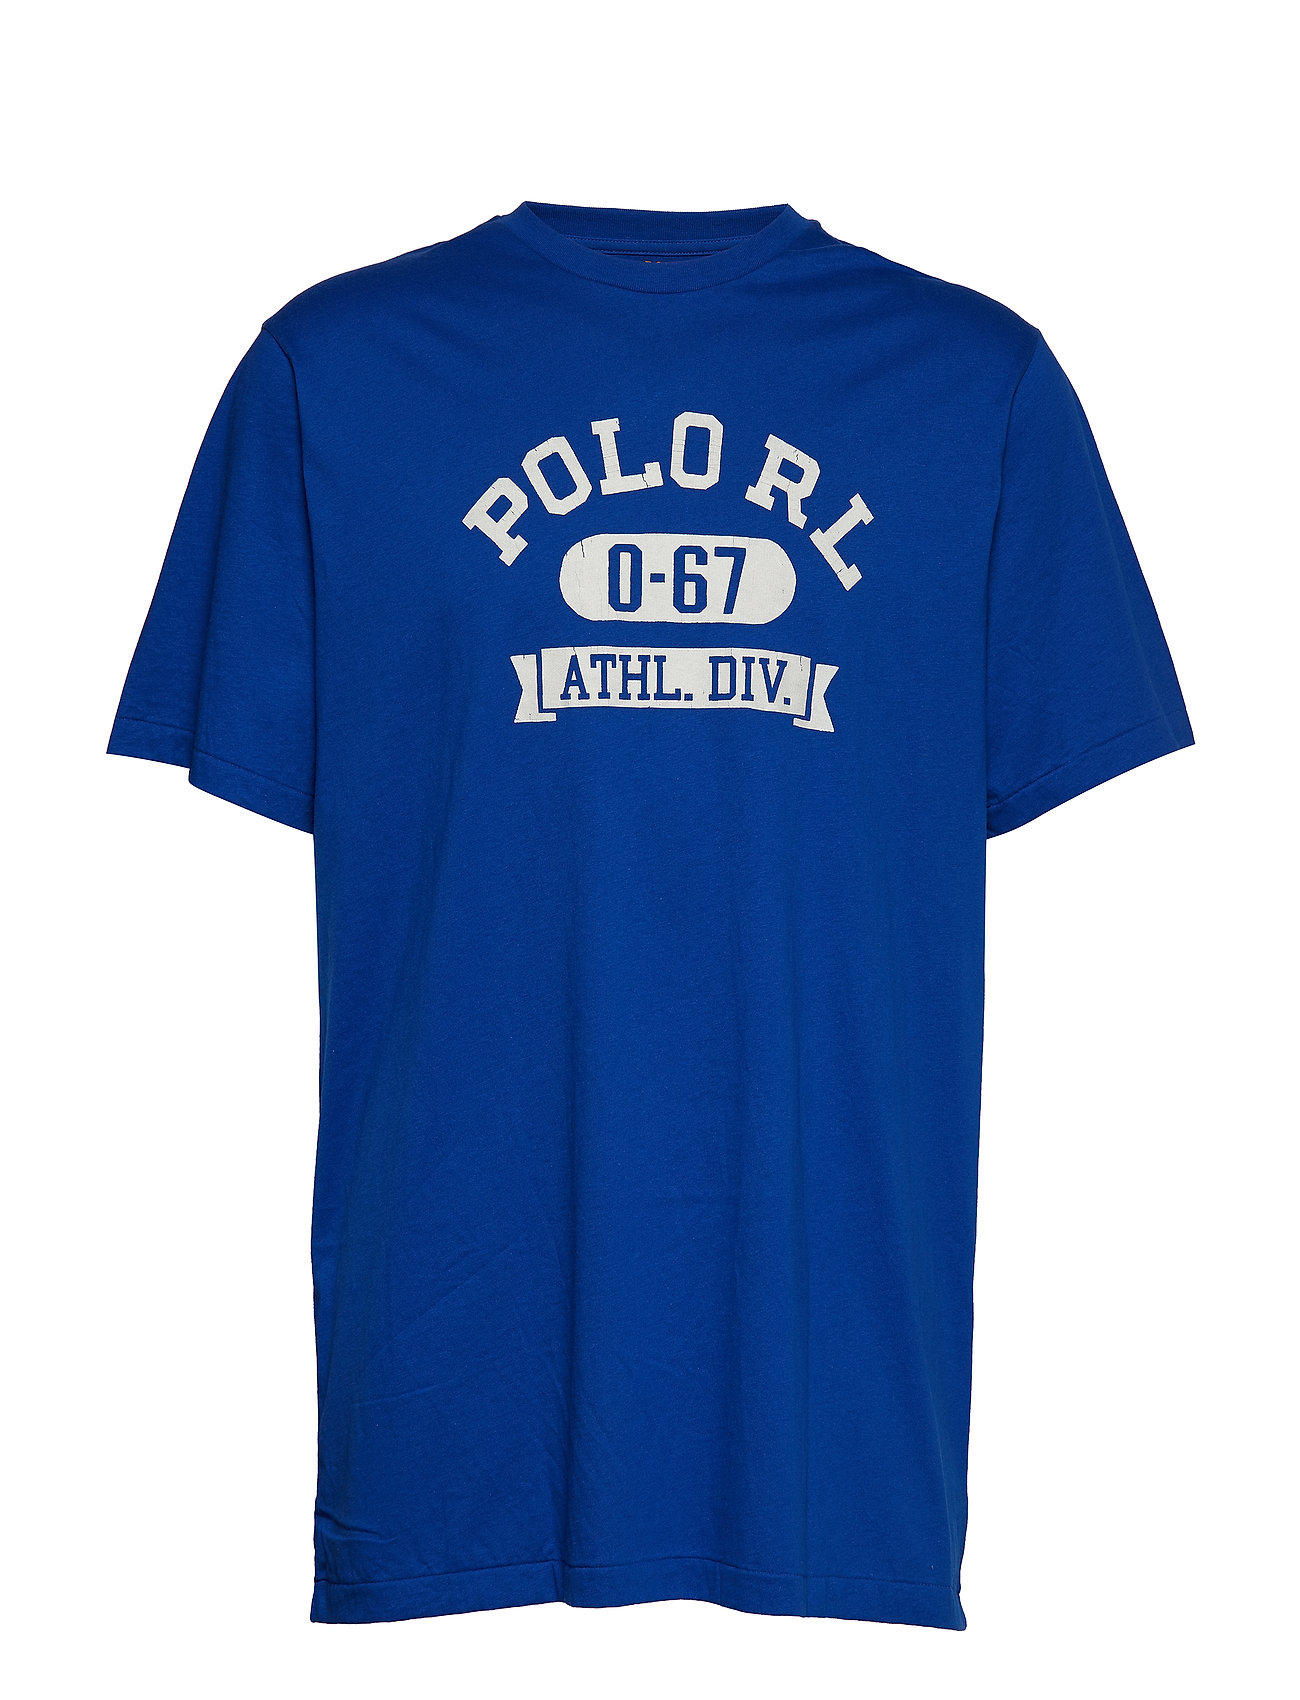 Polo Ralph Lauren Big & Tall Classic Fit Graphic Tee